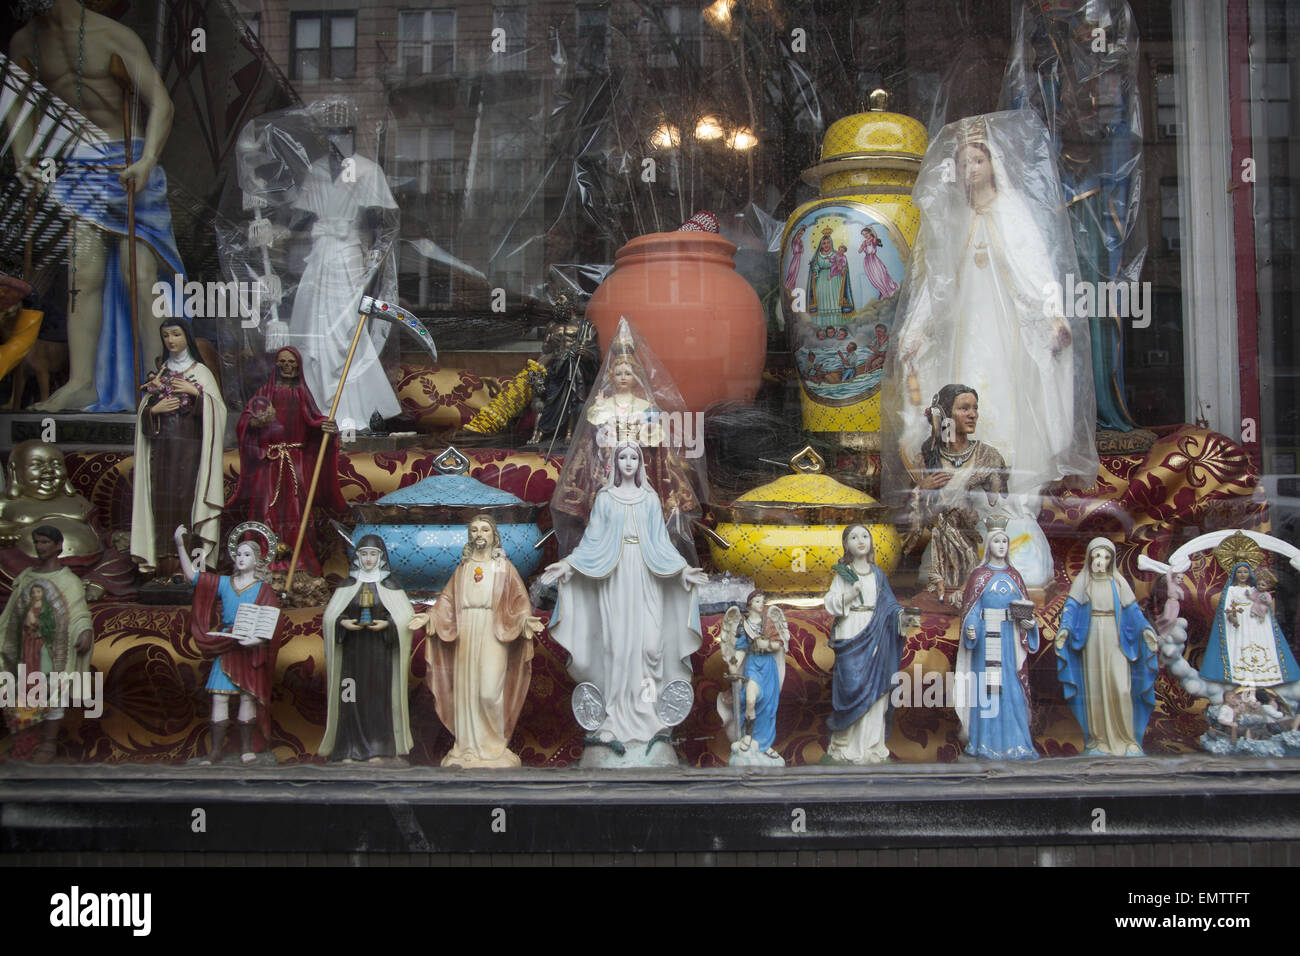 Store that sells religious statuary and other items for religious devotional practice. - Stock Image